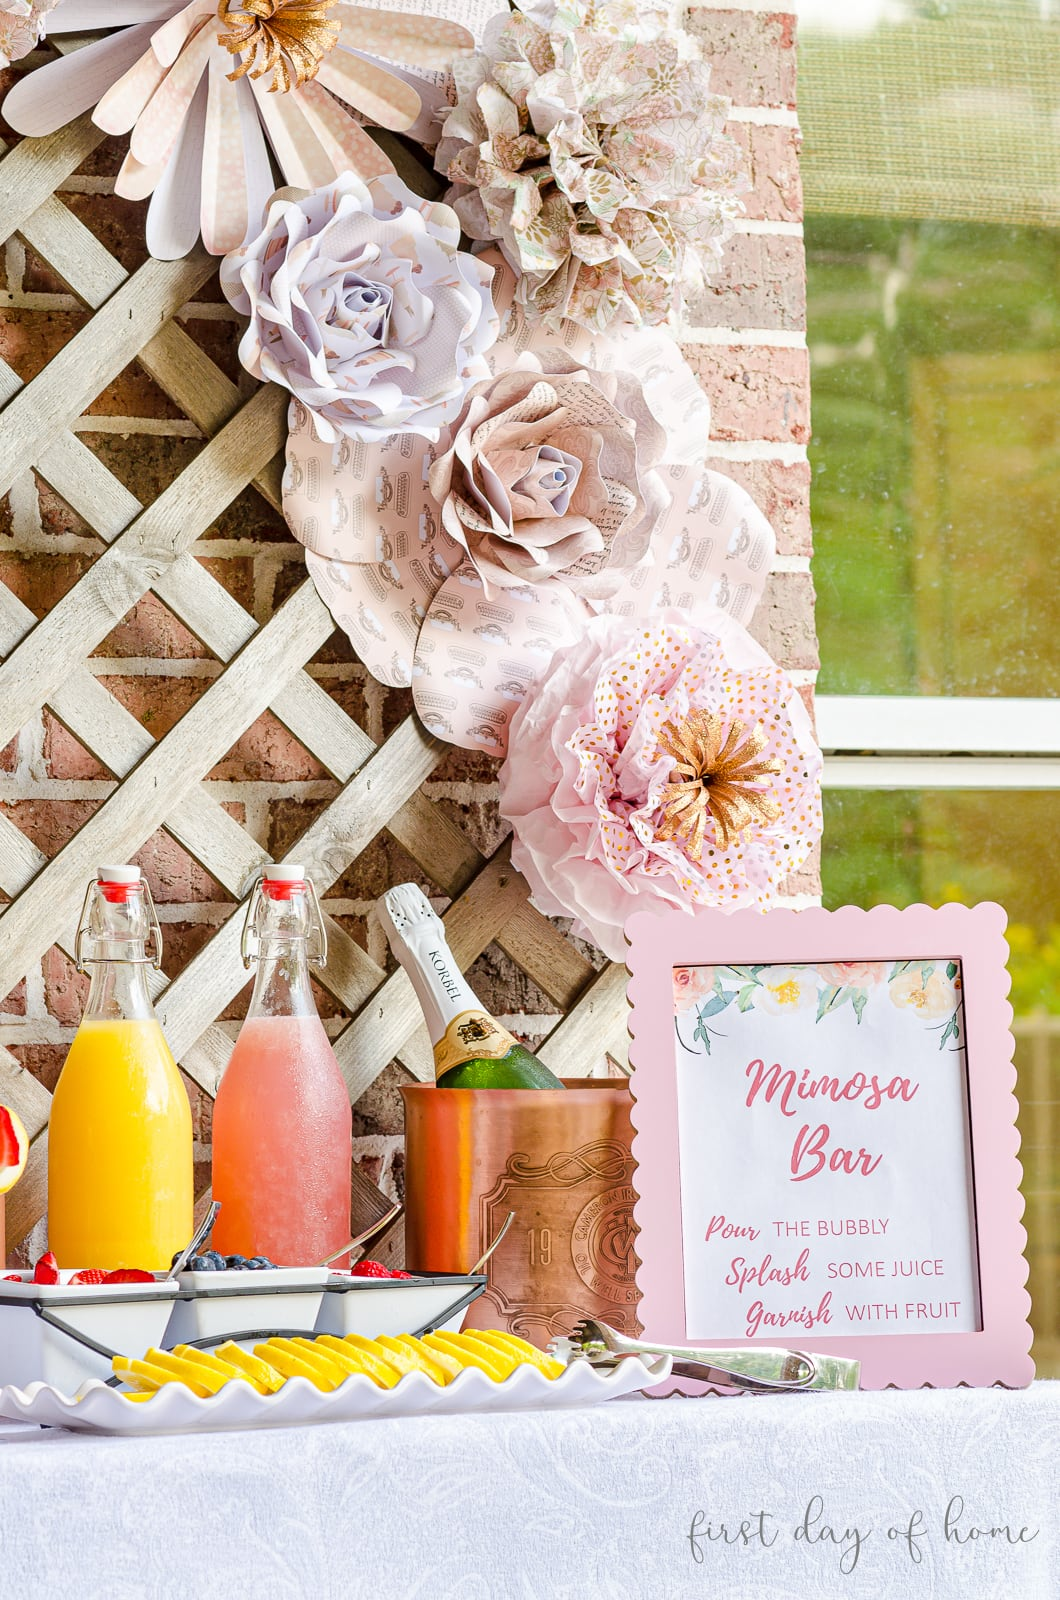 Mimosa bar sign on table in front of lattice with paper flowers